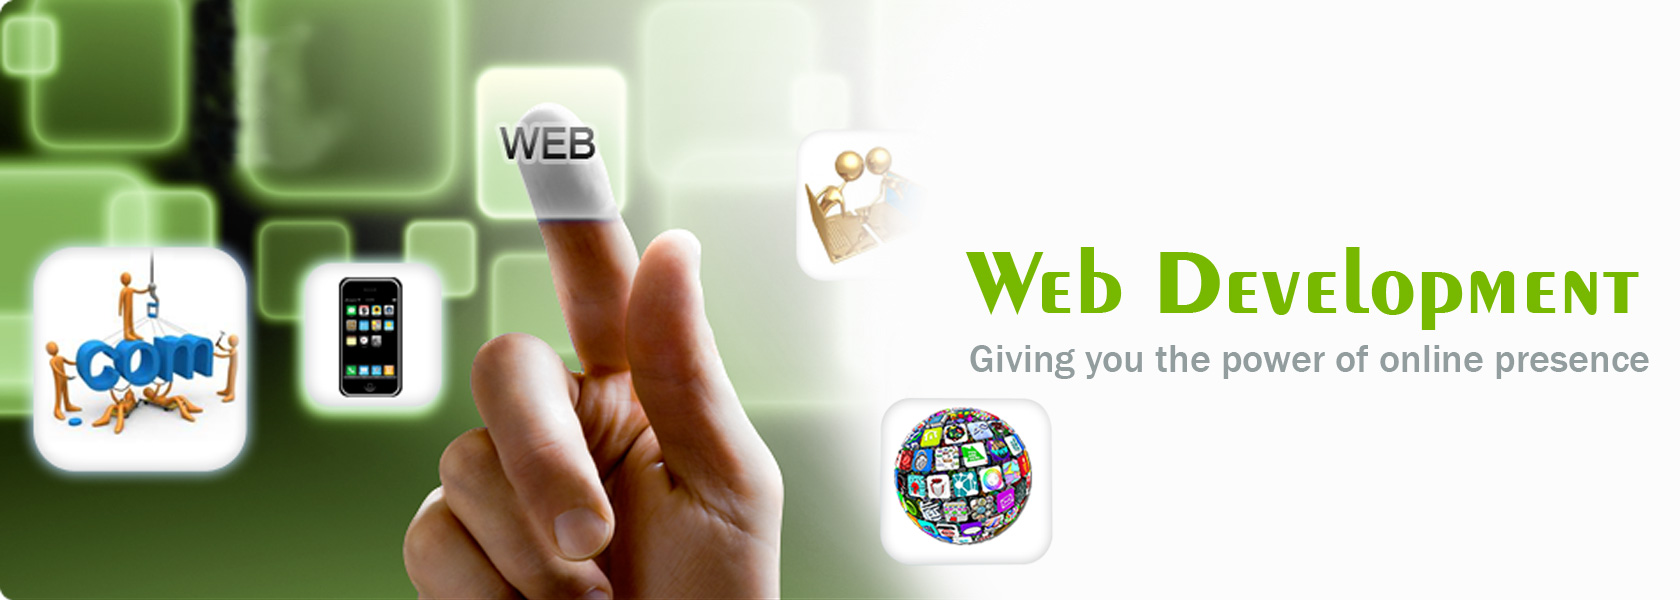 Seo supportive Website Design